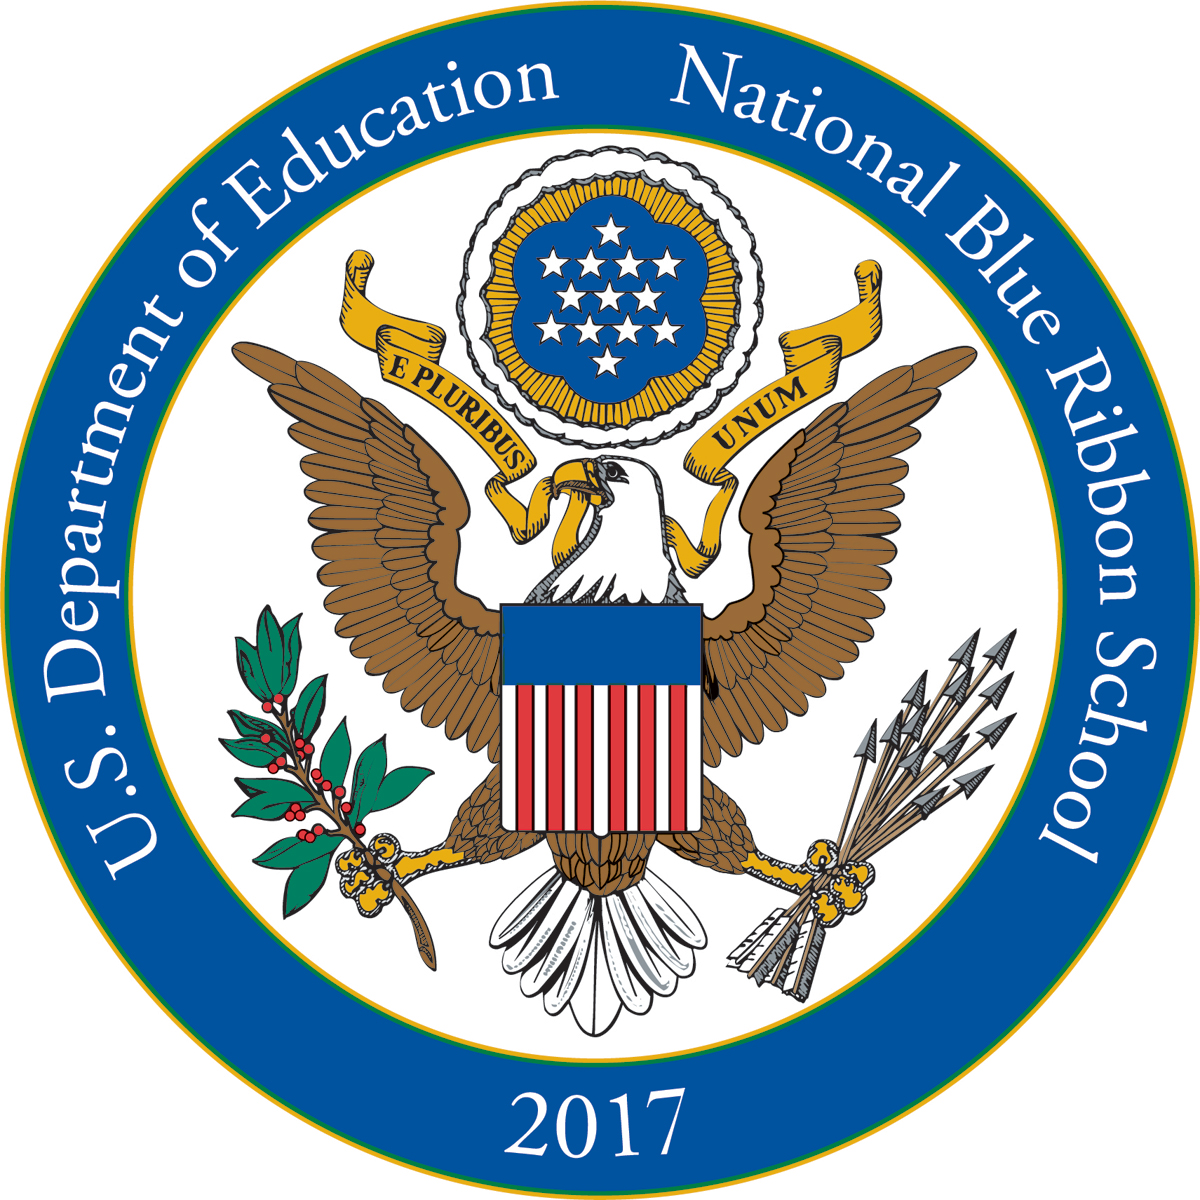 Image of National Blue Ribbon Award logo